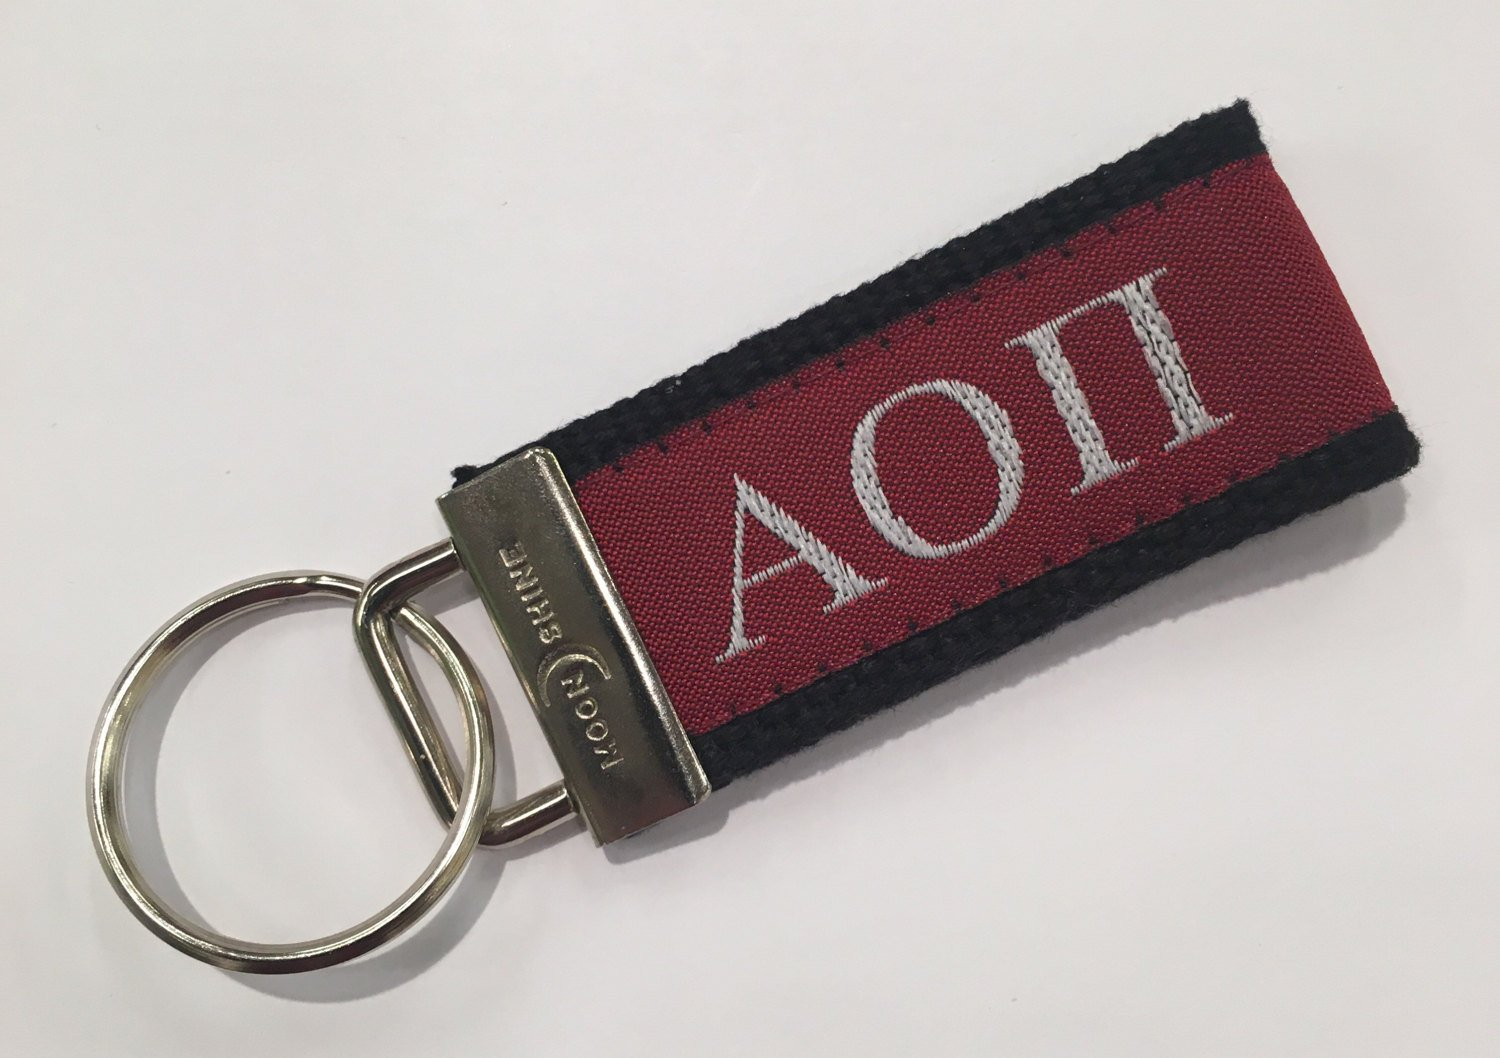 Greek Letter Alpha Omicron Pi Sorority Web Key Chain Fob.  Officially Licensed Greek Accessories.